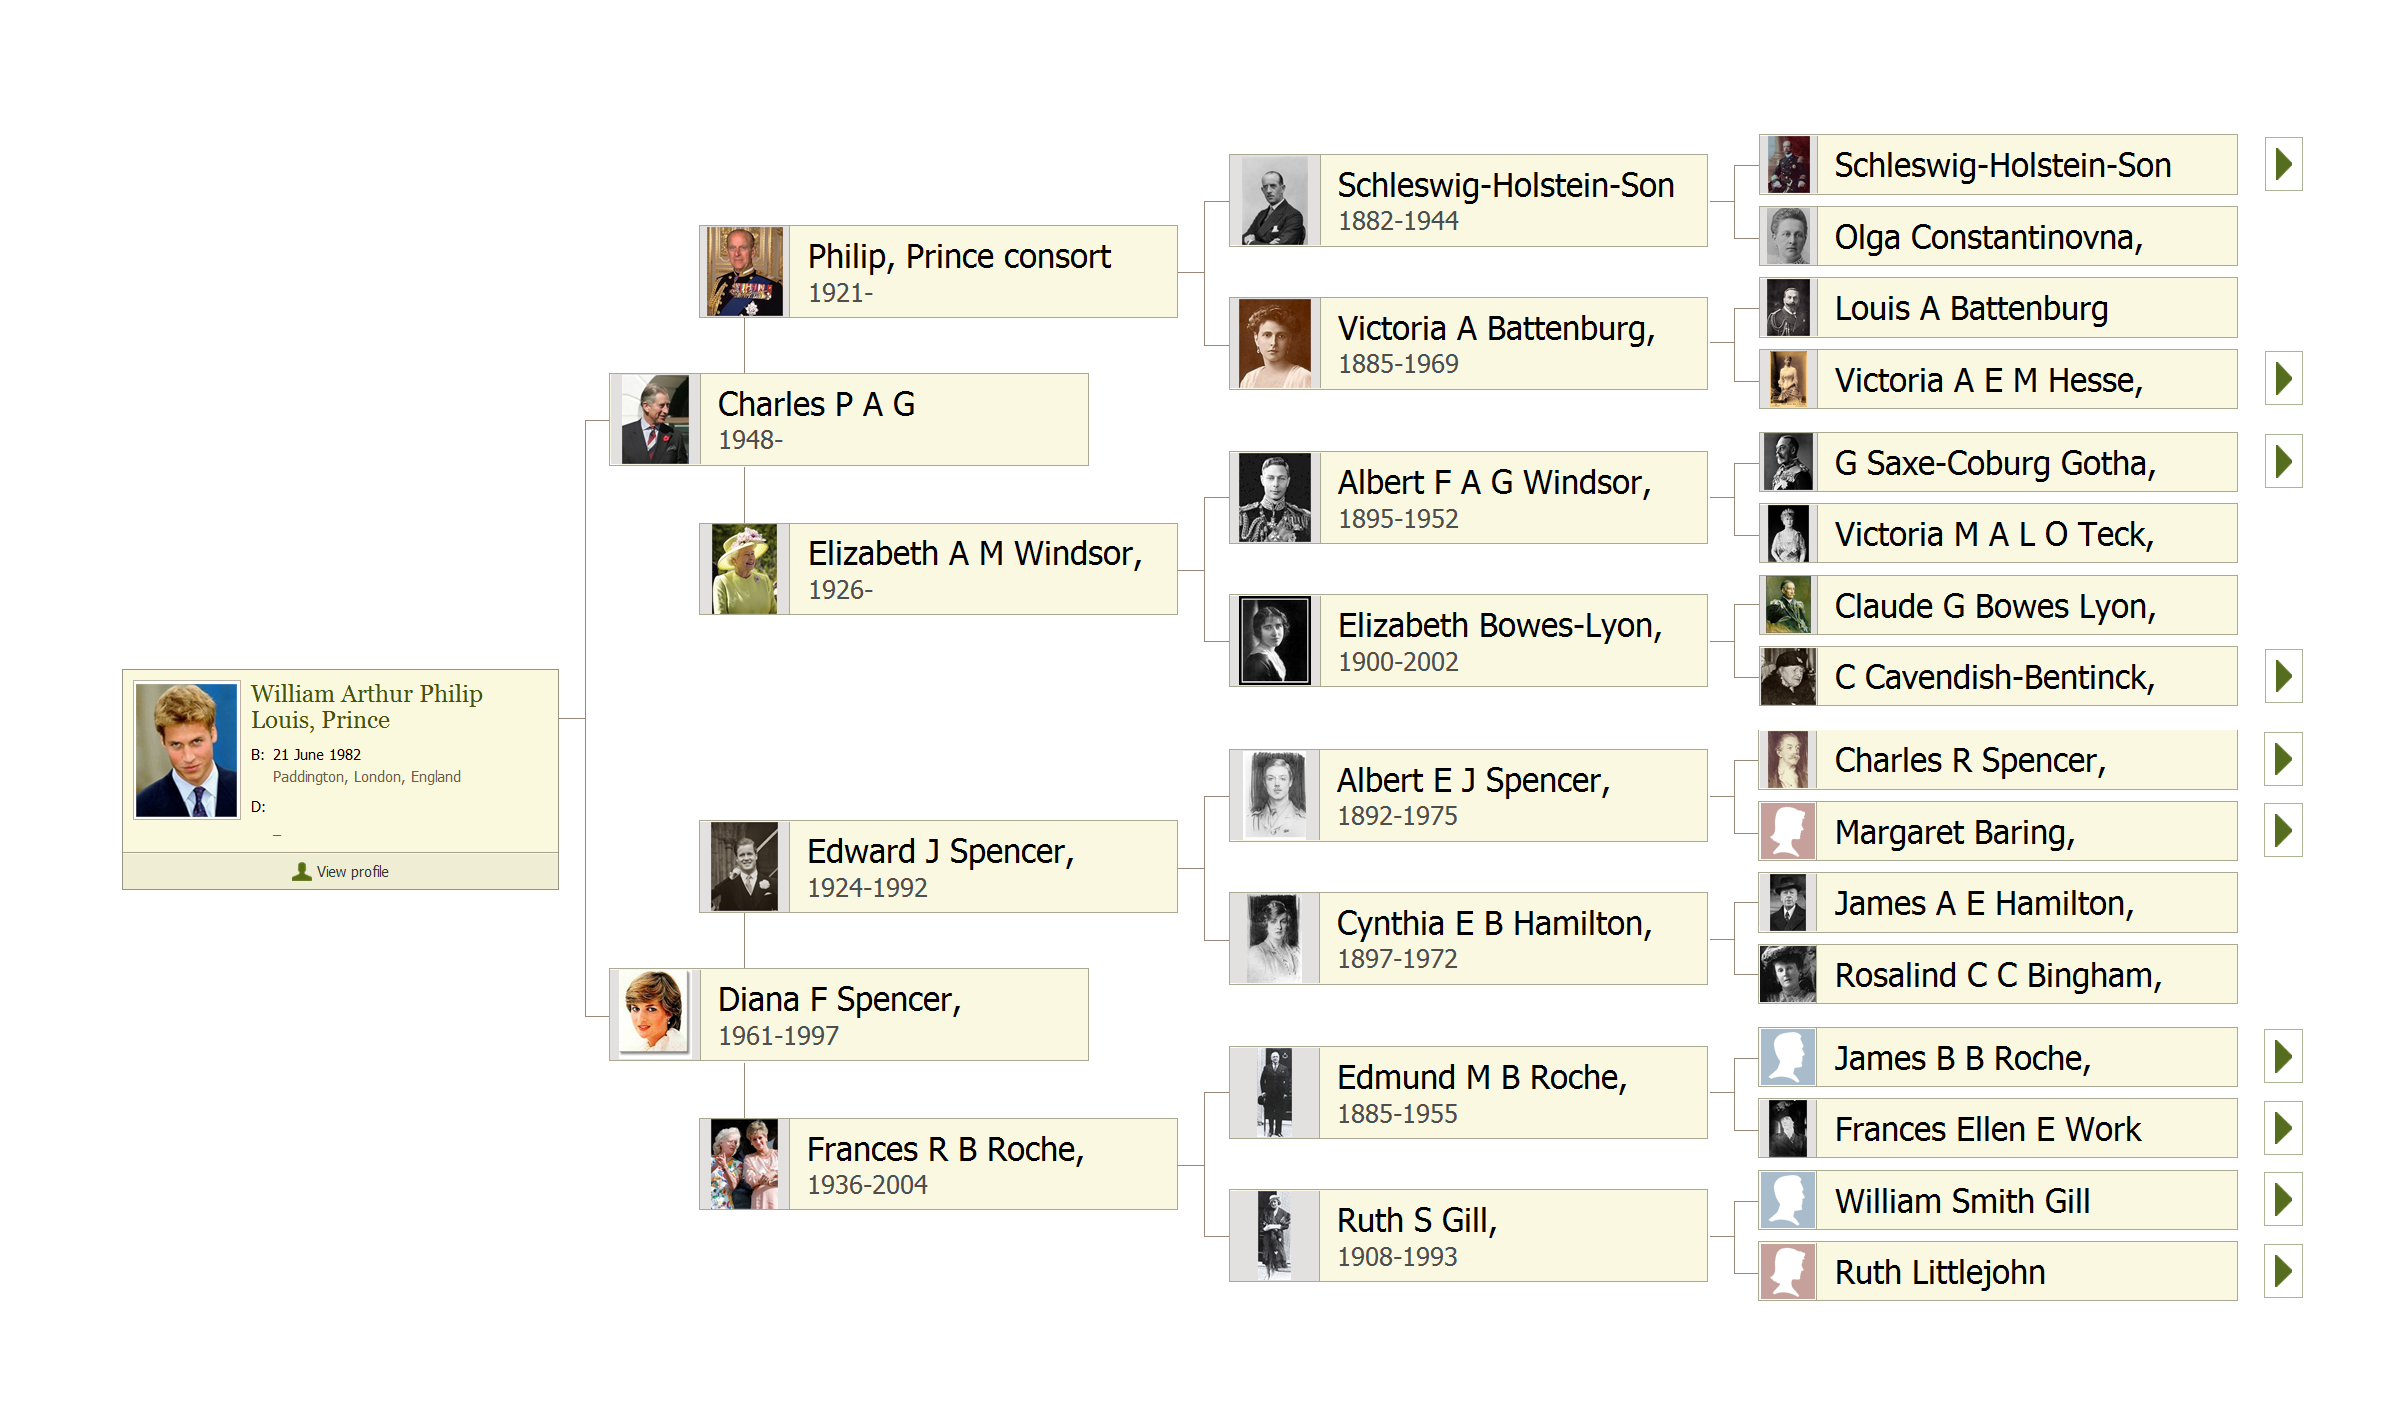 'Stunning' Family Tree Includes 13 Million People Over 11 Generations